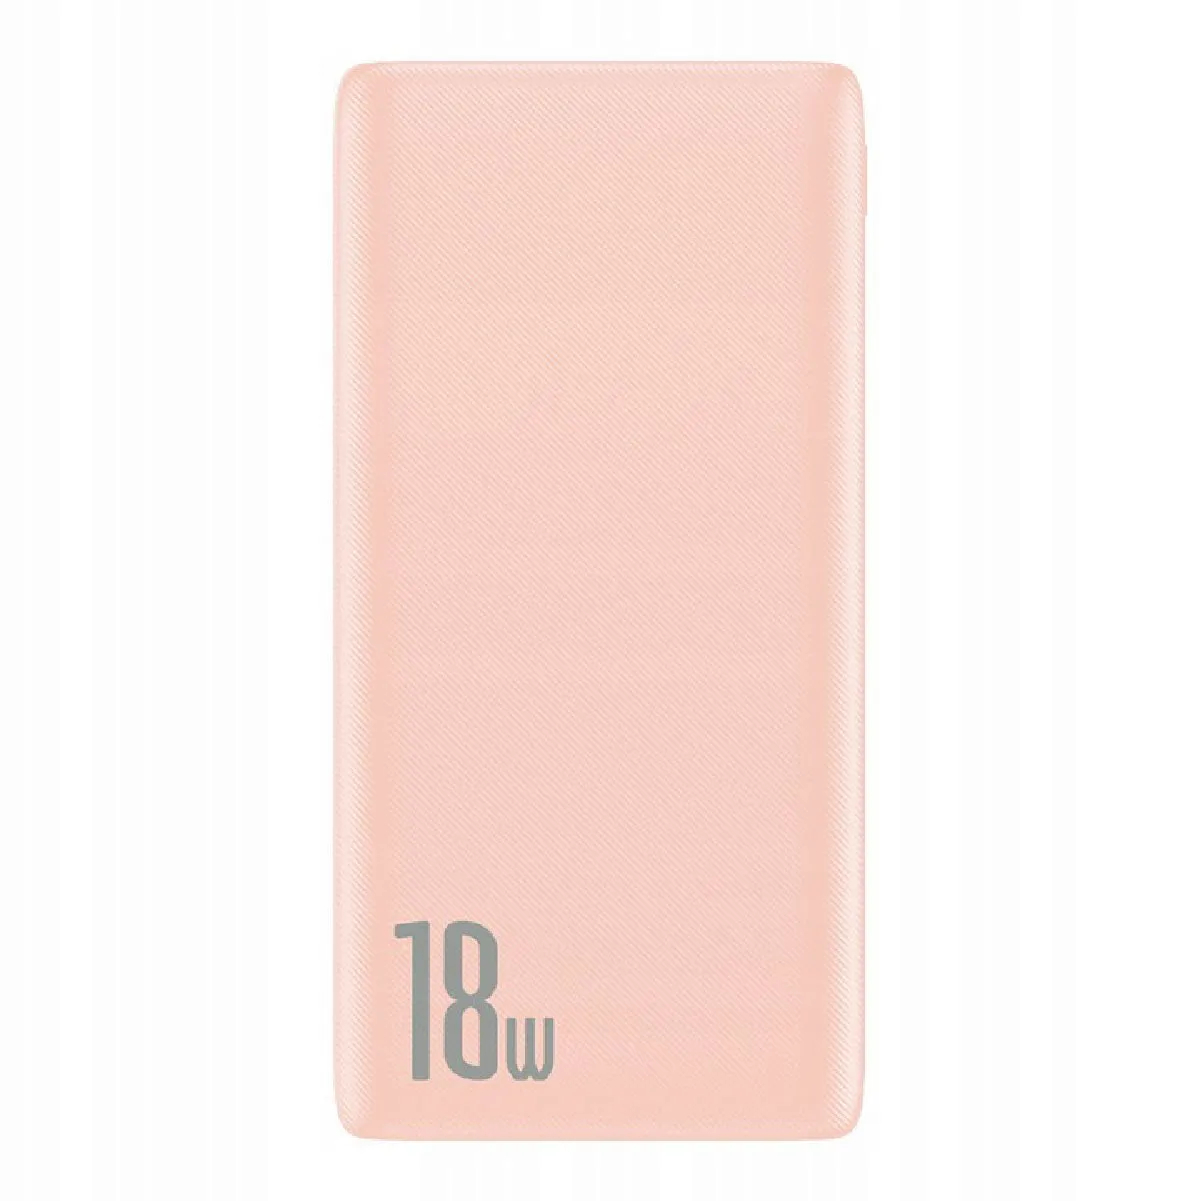 Carregador Portátil Baseus Power bank Bipow 10000mAh PD+QC 18w Rosa